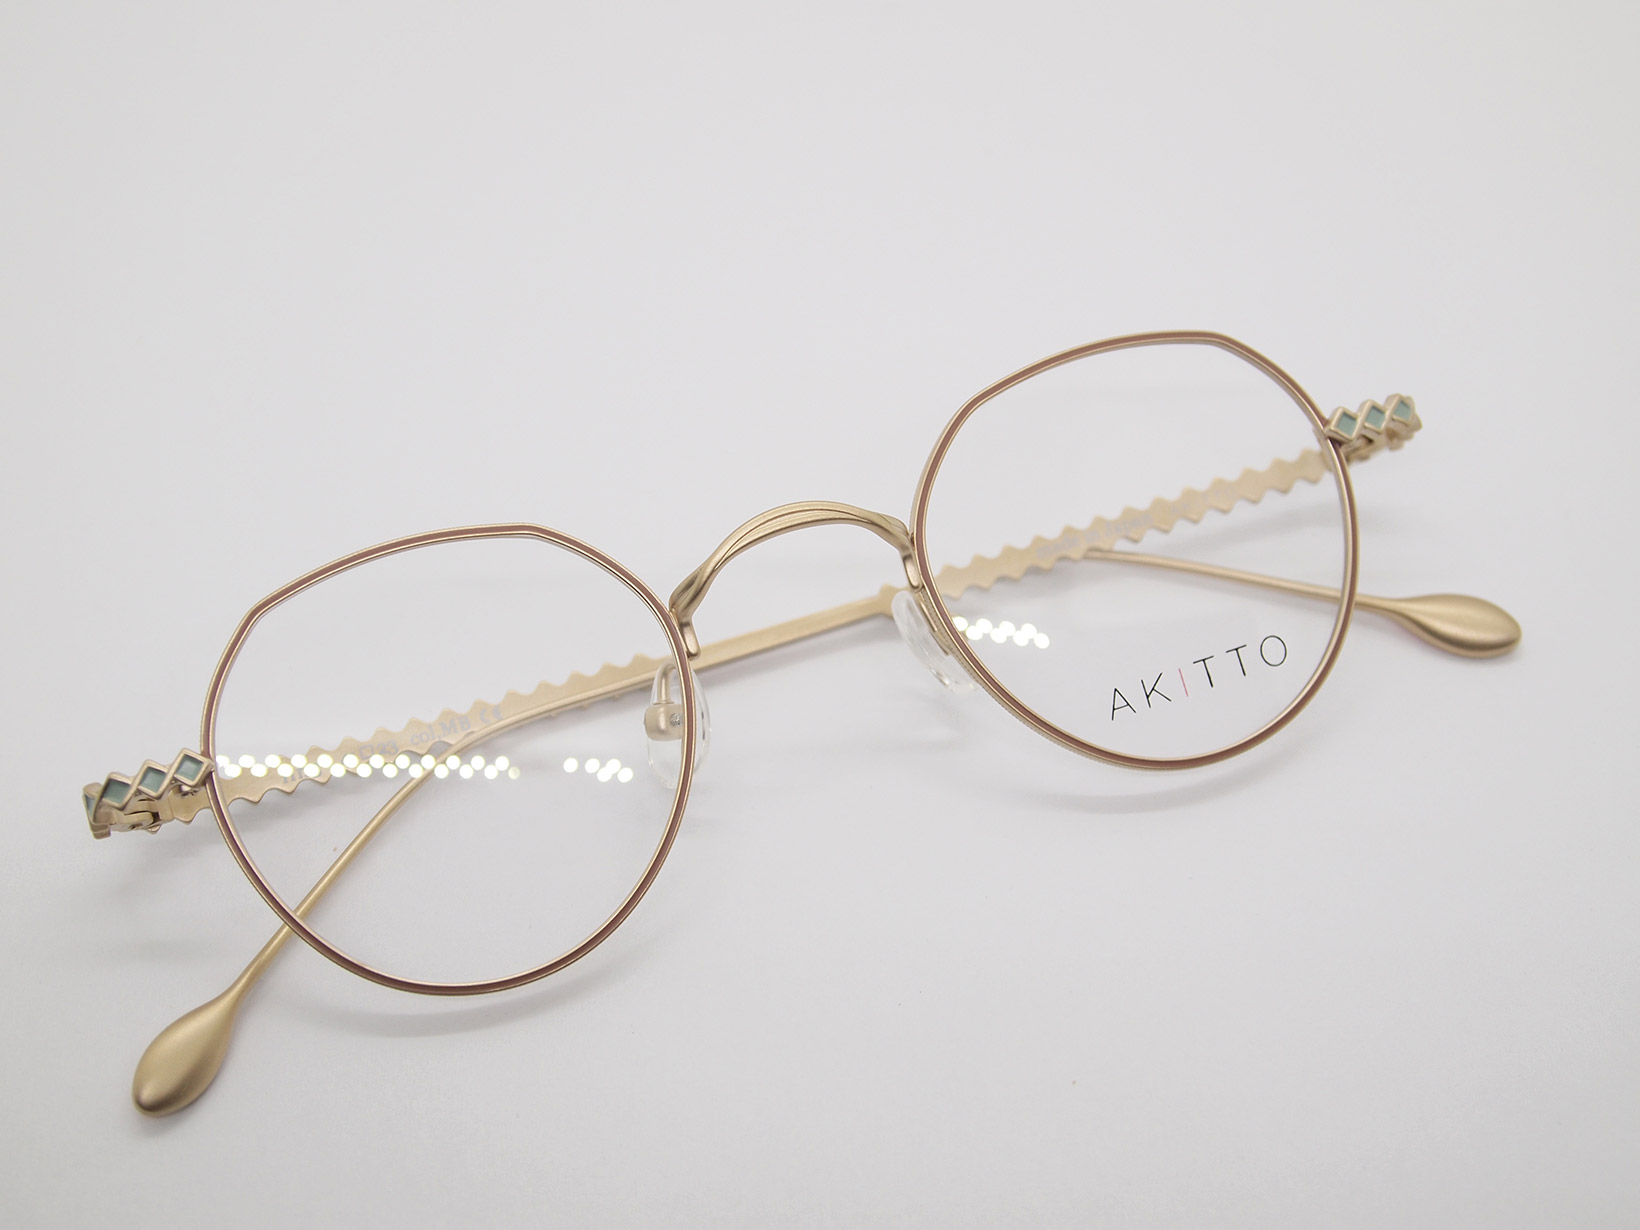 AKITTO 2021-4th lin3 color MB size:41□23 material:titanium+enamel price:¥48,950-(税込み)